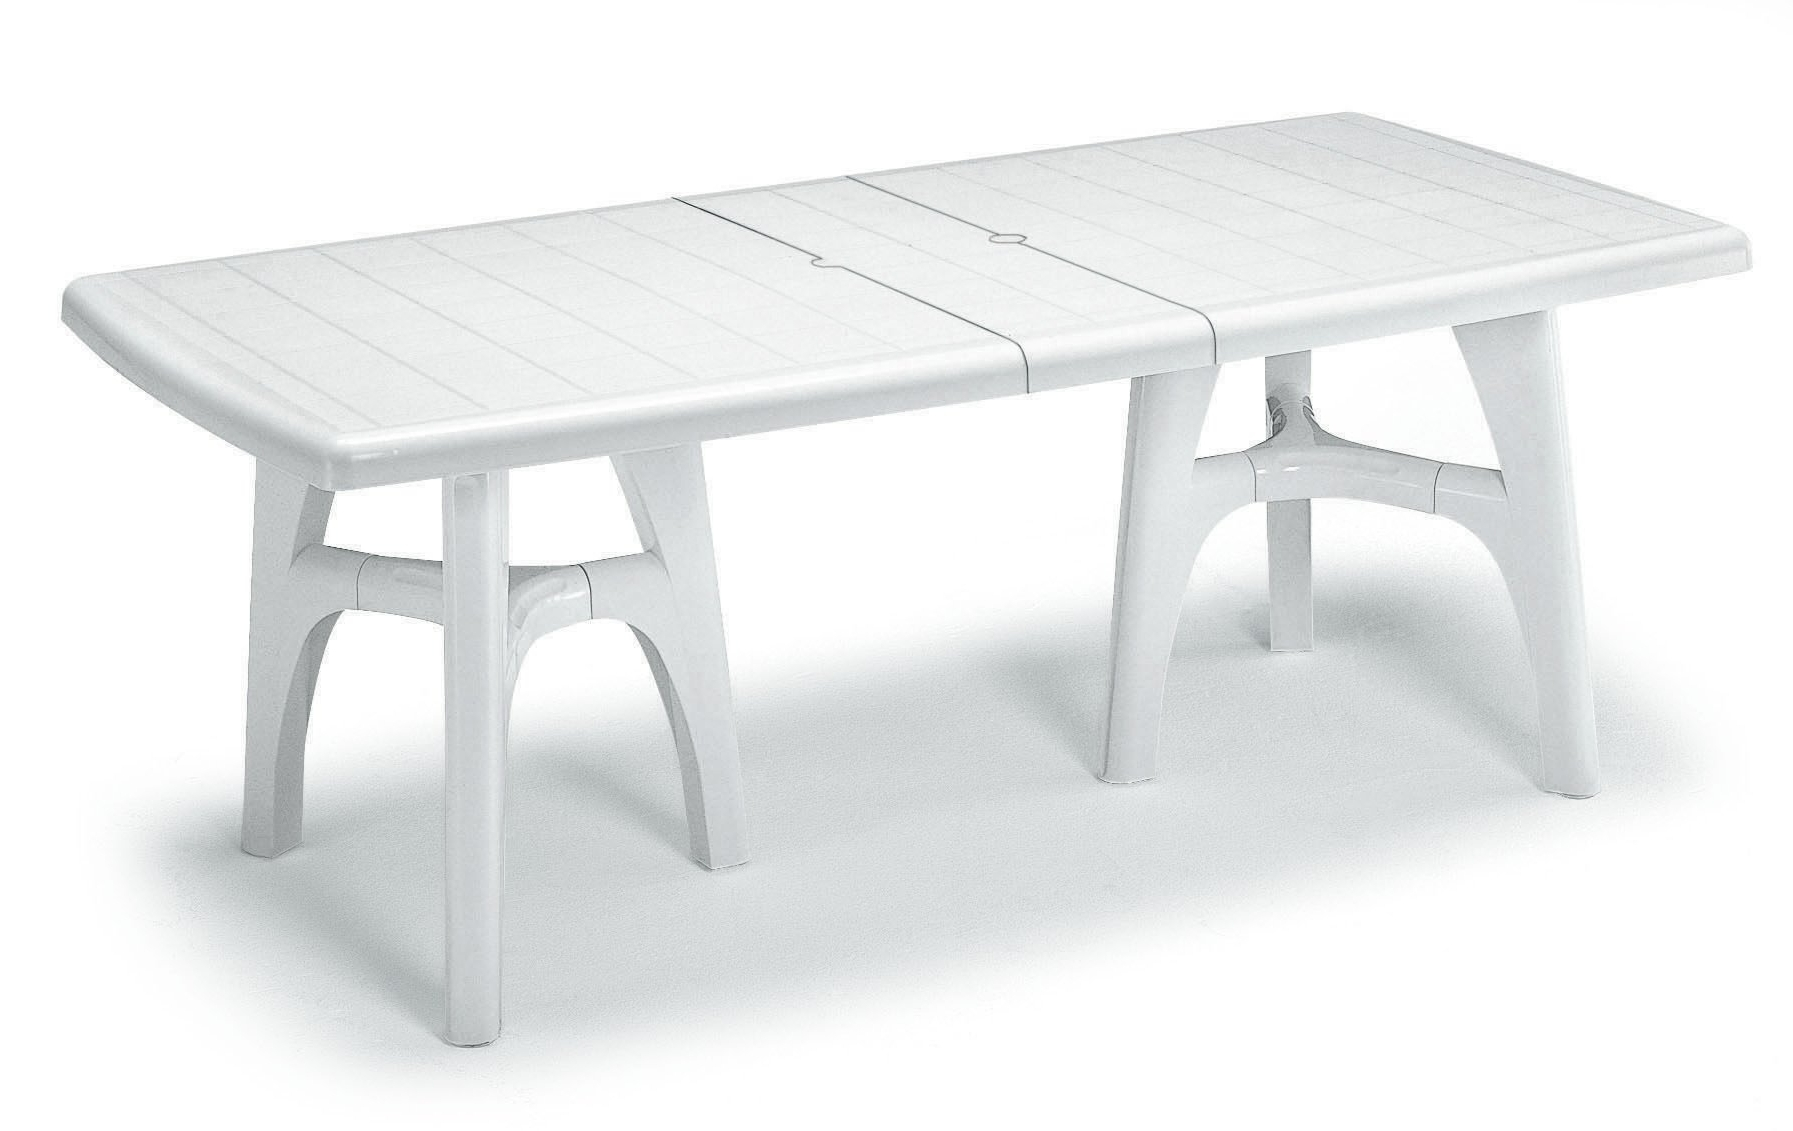 Extending Outdoor Dining Tables pertaining to Recent Scab President Tris Extending Outdoor Dining Table